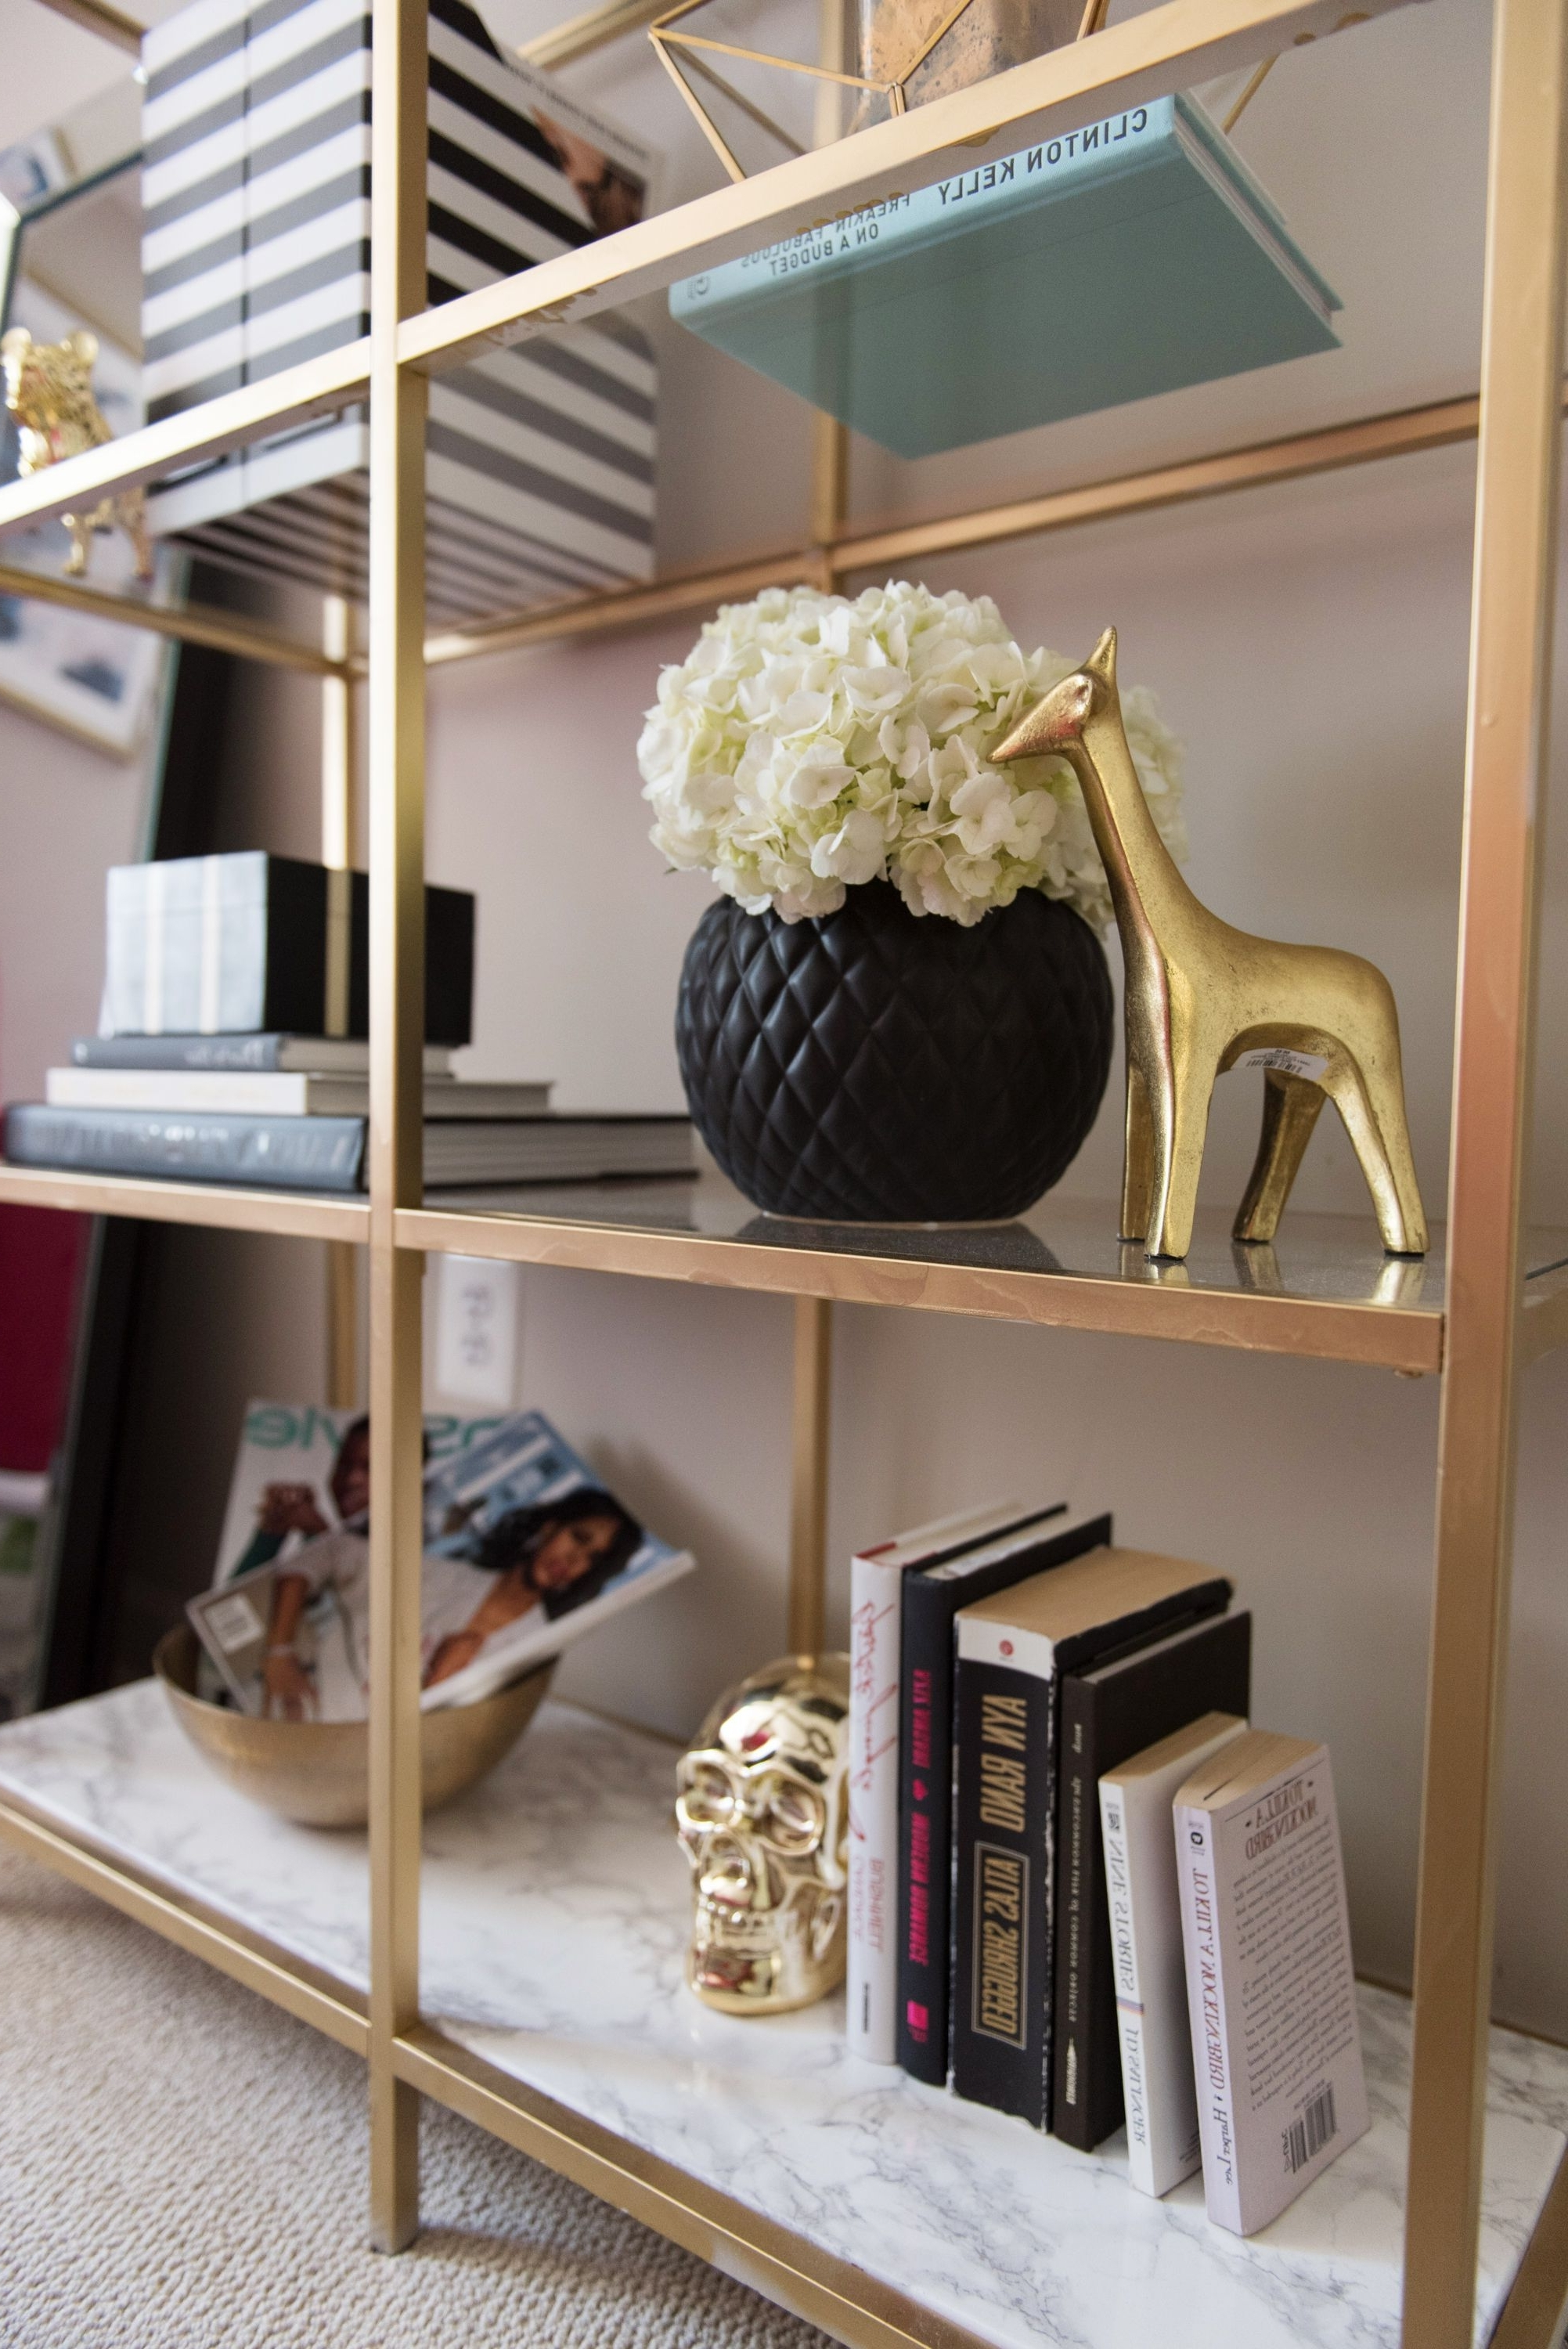 bookcase shelves living market display furniture cabinets world metal xxx category bexley bookcases gold do room rustic shelving